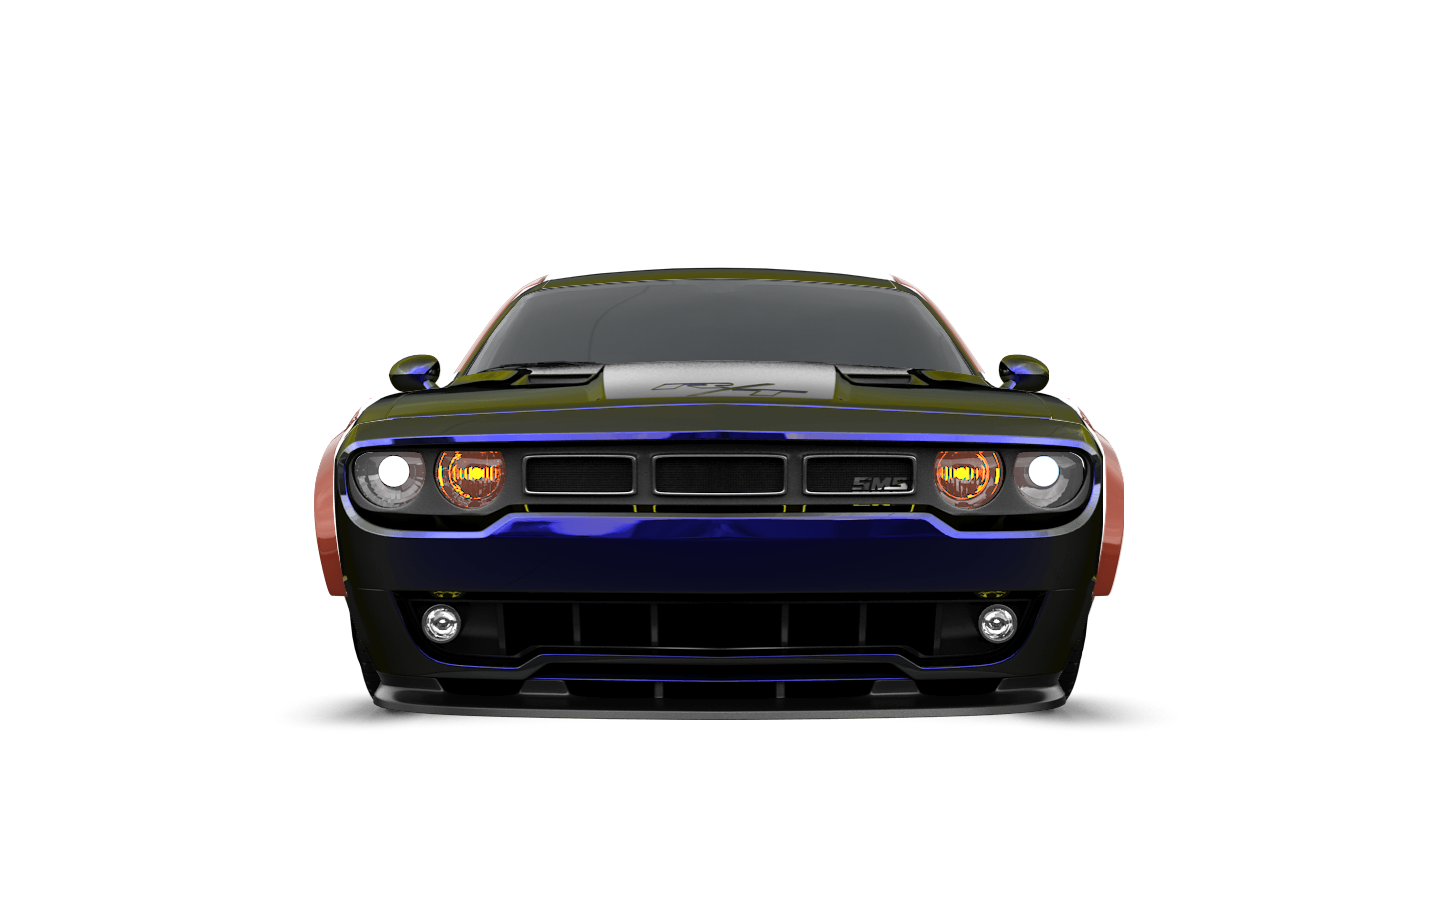 Dodge challenger08 by ys ad